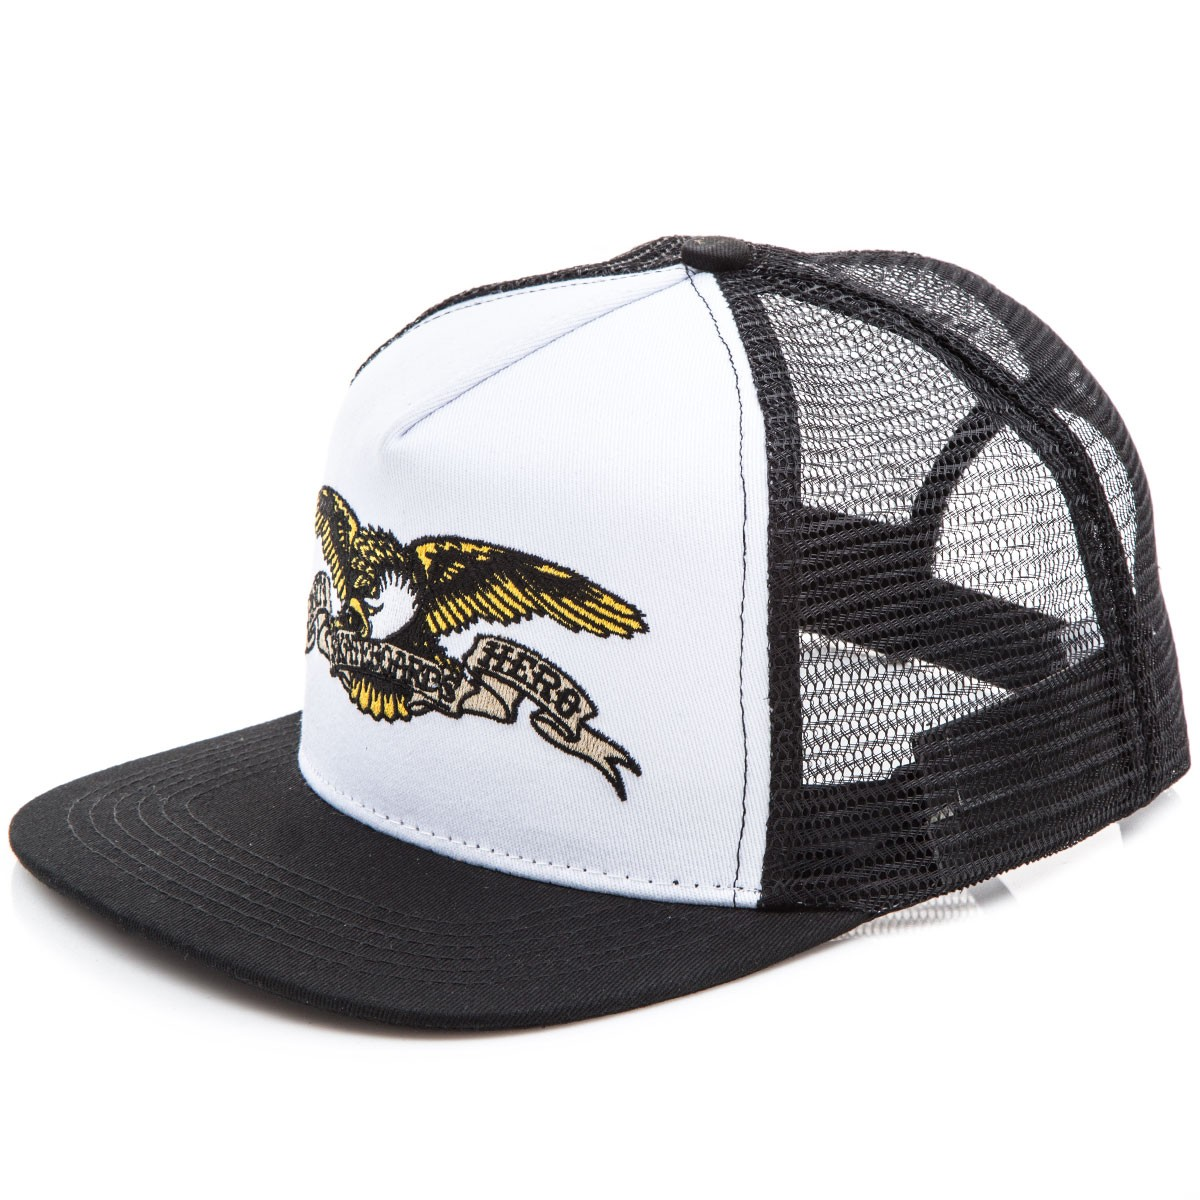 f7e51dbb Anti-Hero Eagle Trucker Hat - White/Black